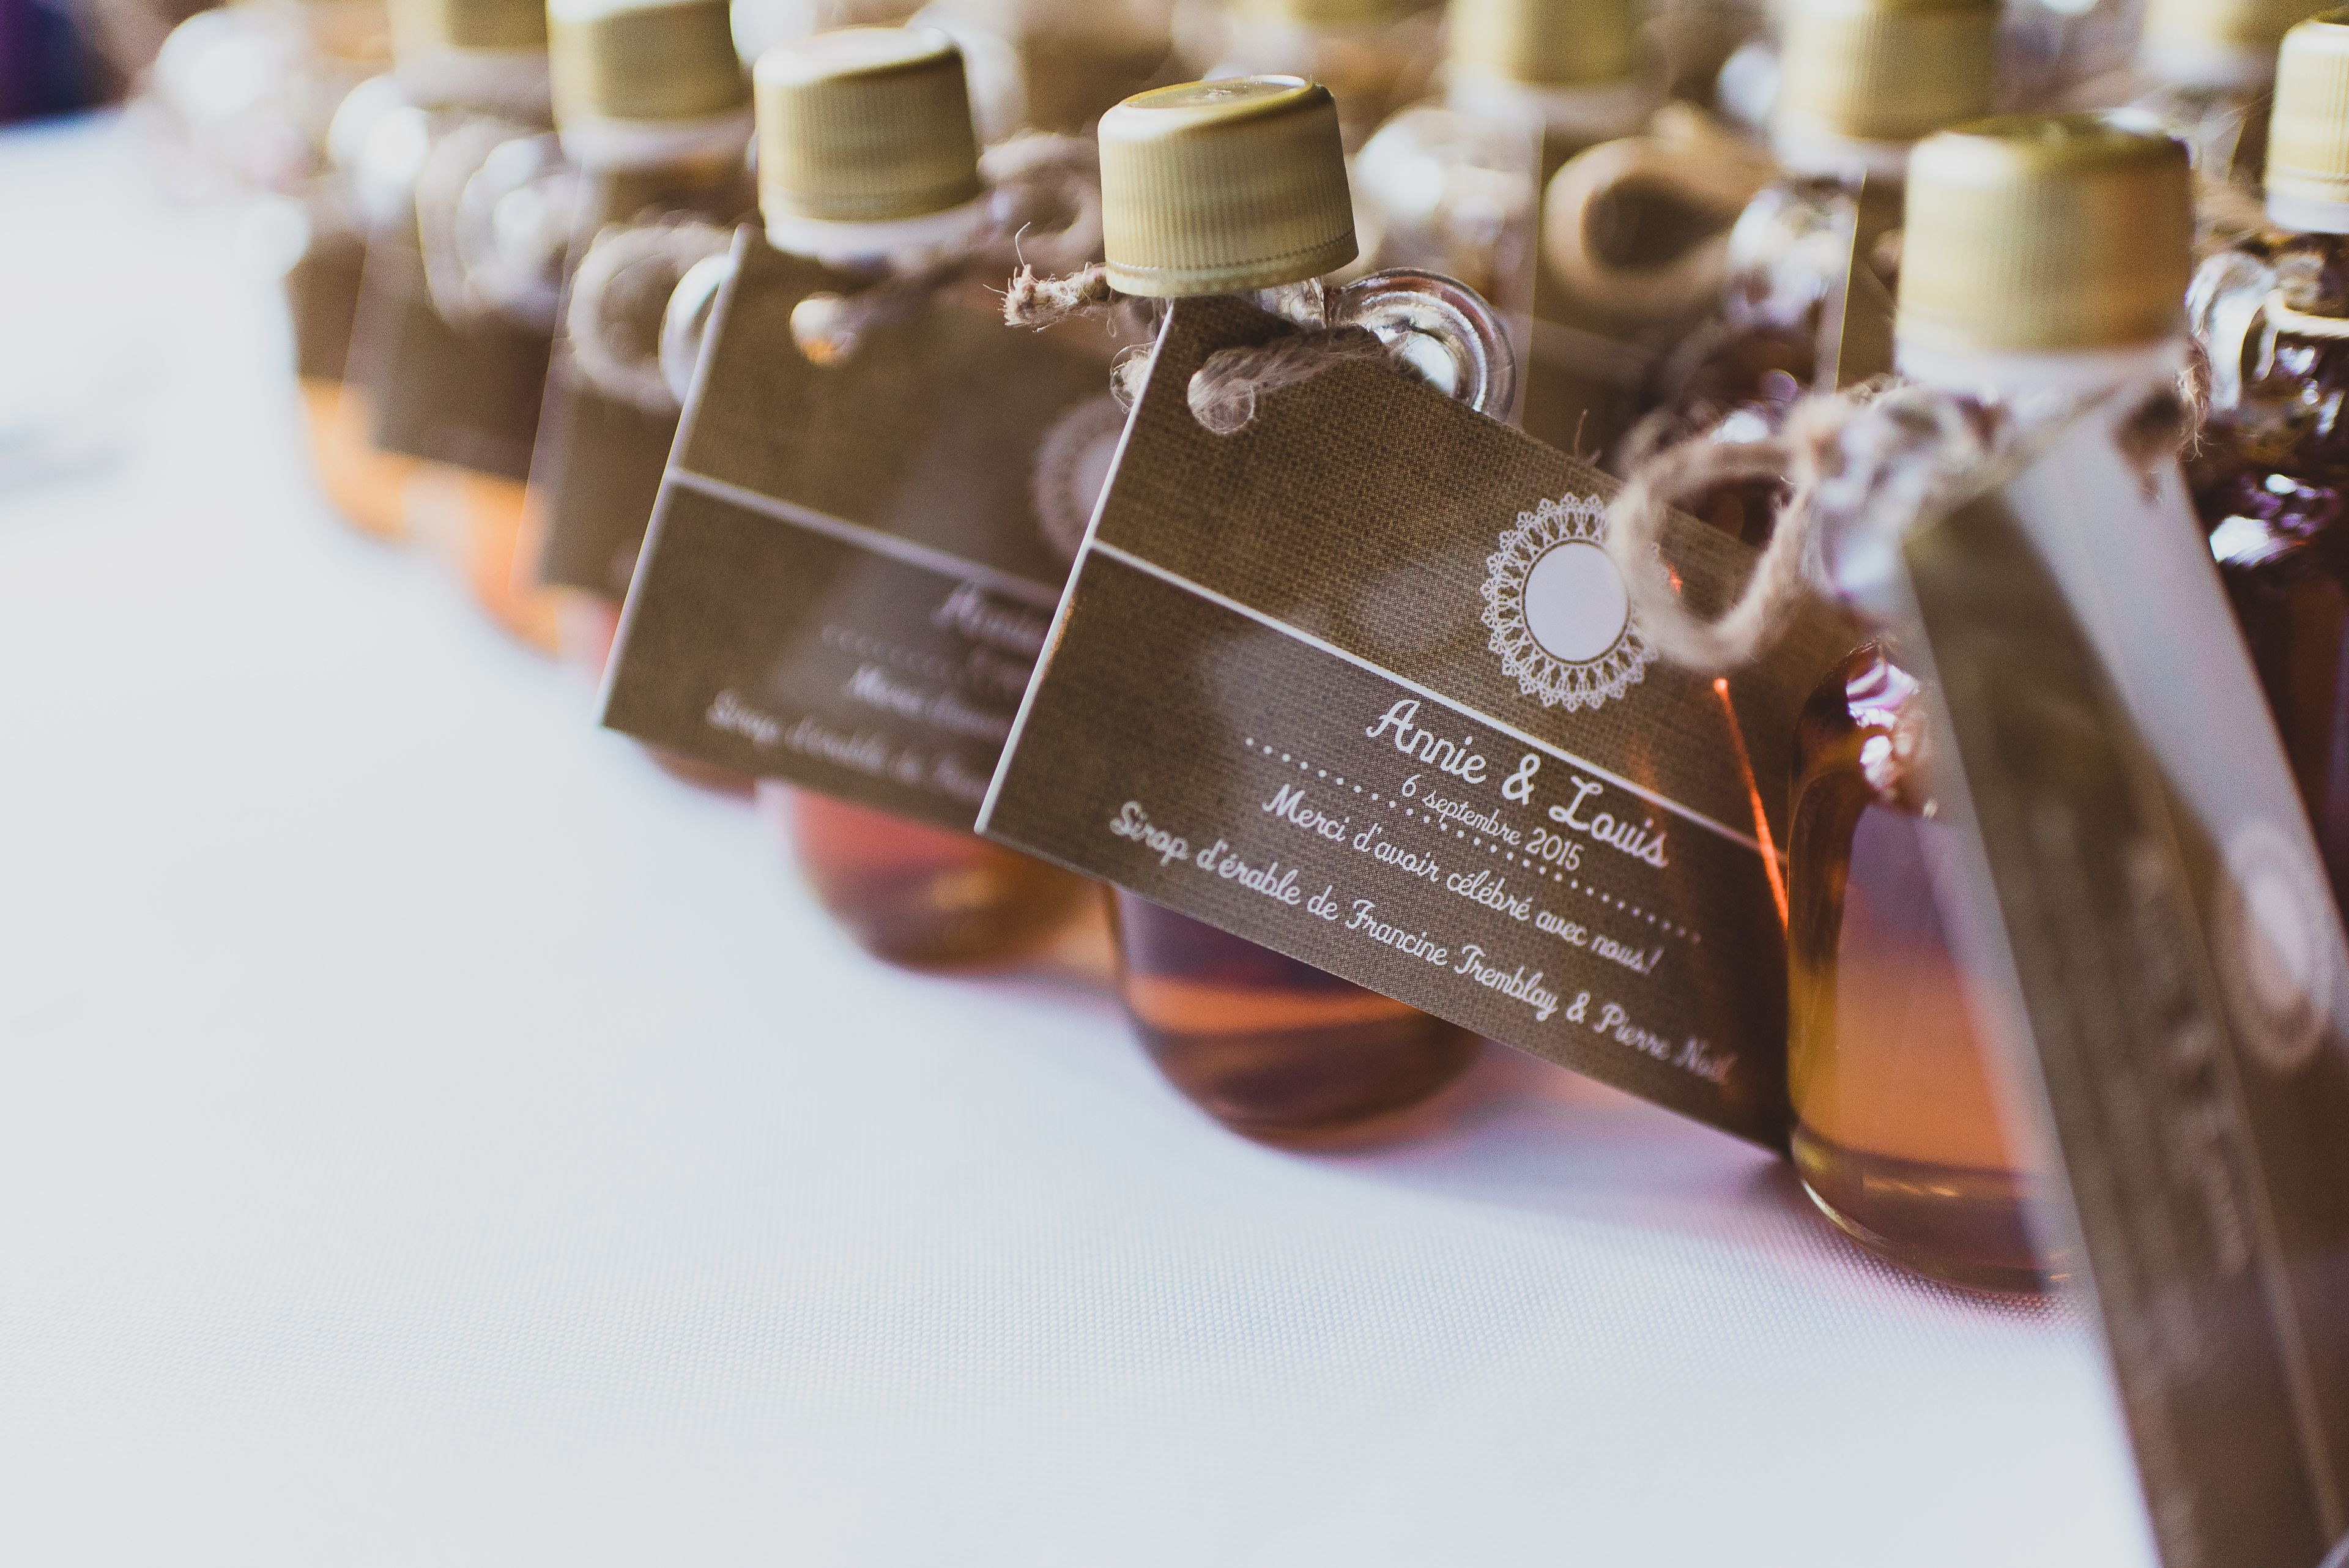 Favours: maple syrup from my parent in laws' sugar shack, Labels: VistaPrint. Photo credit: https://www.pinterest.com/elisaphoto/